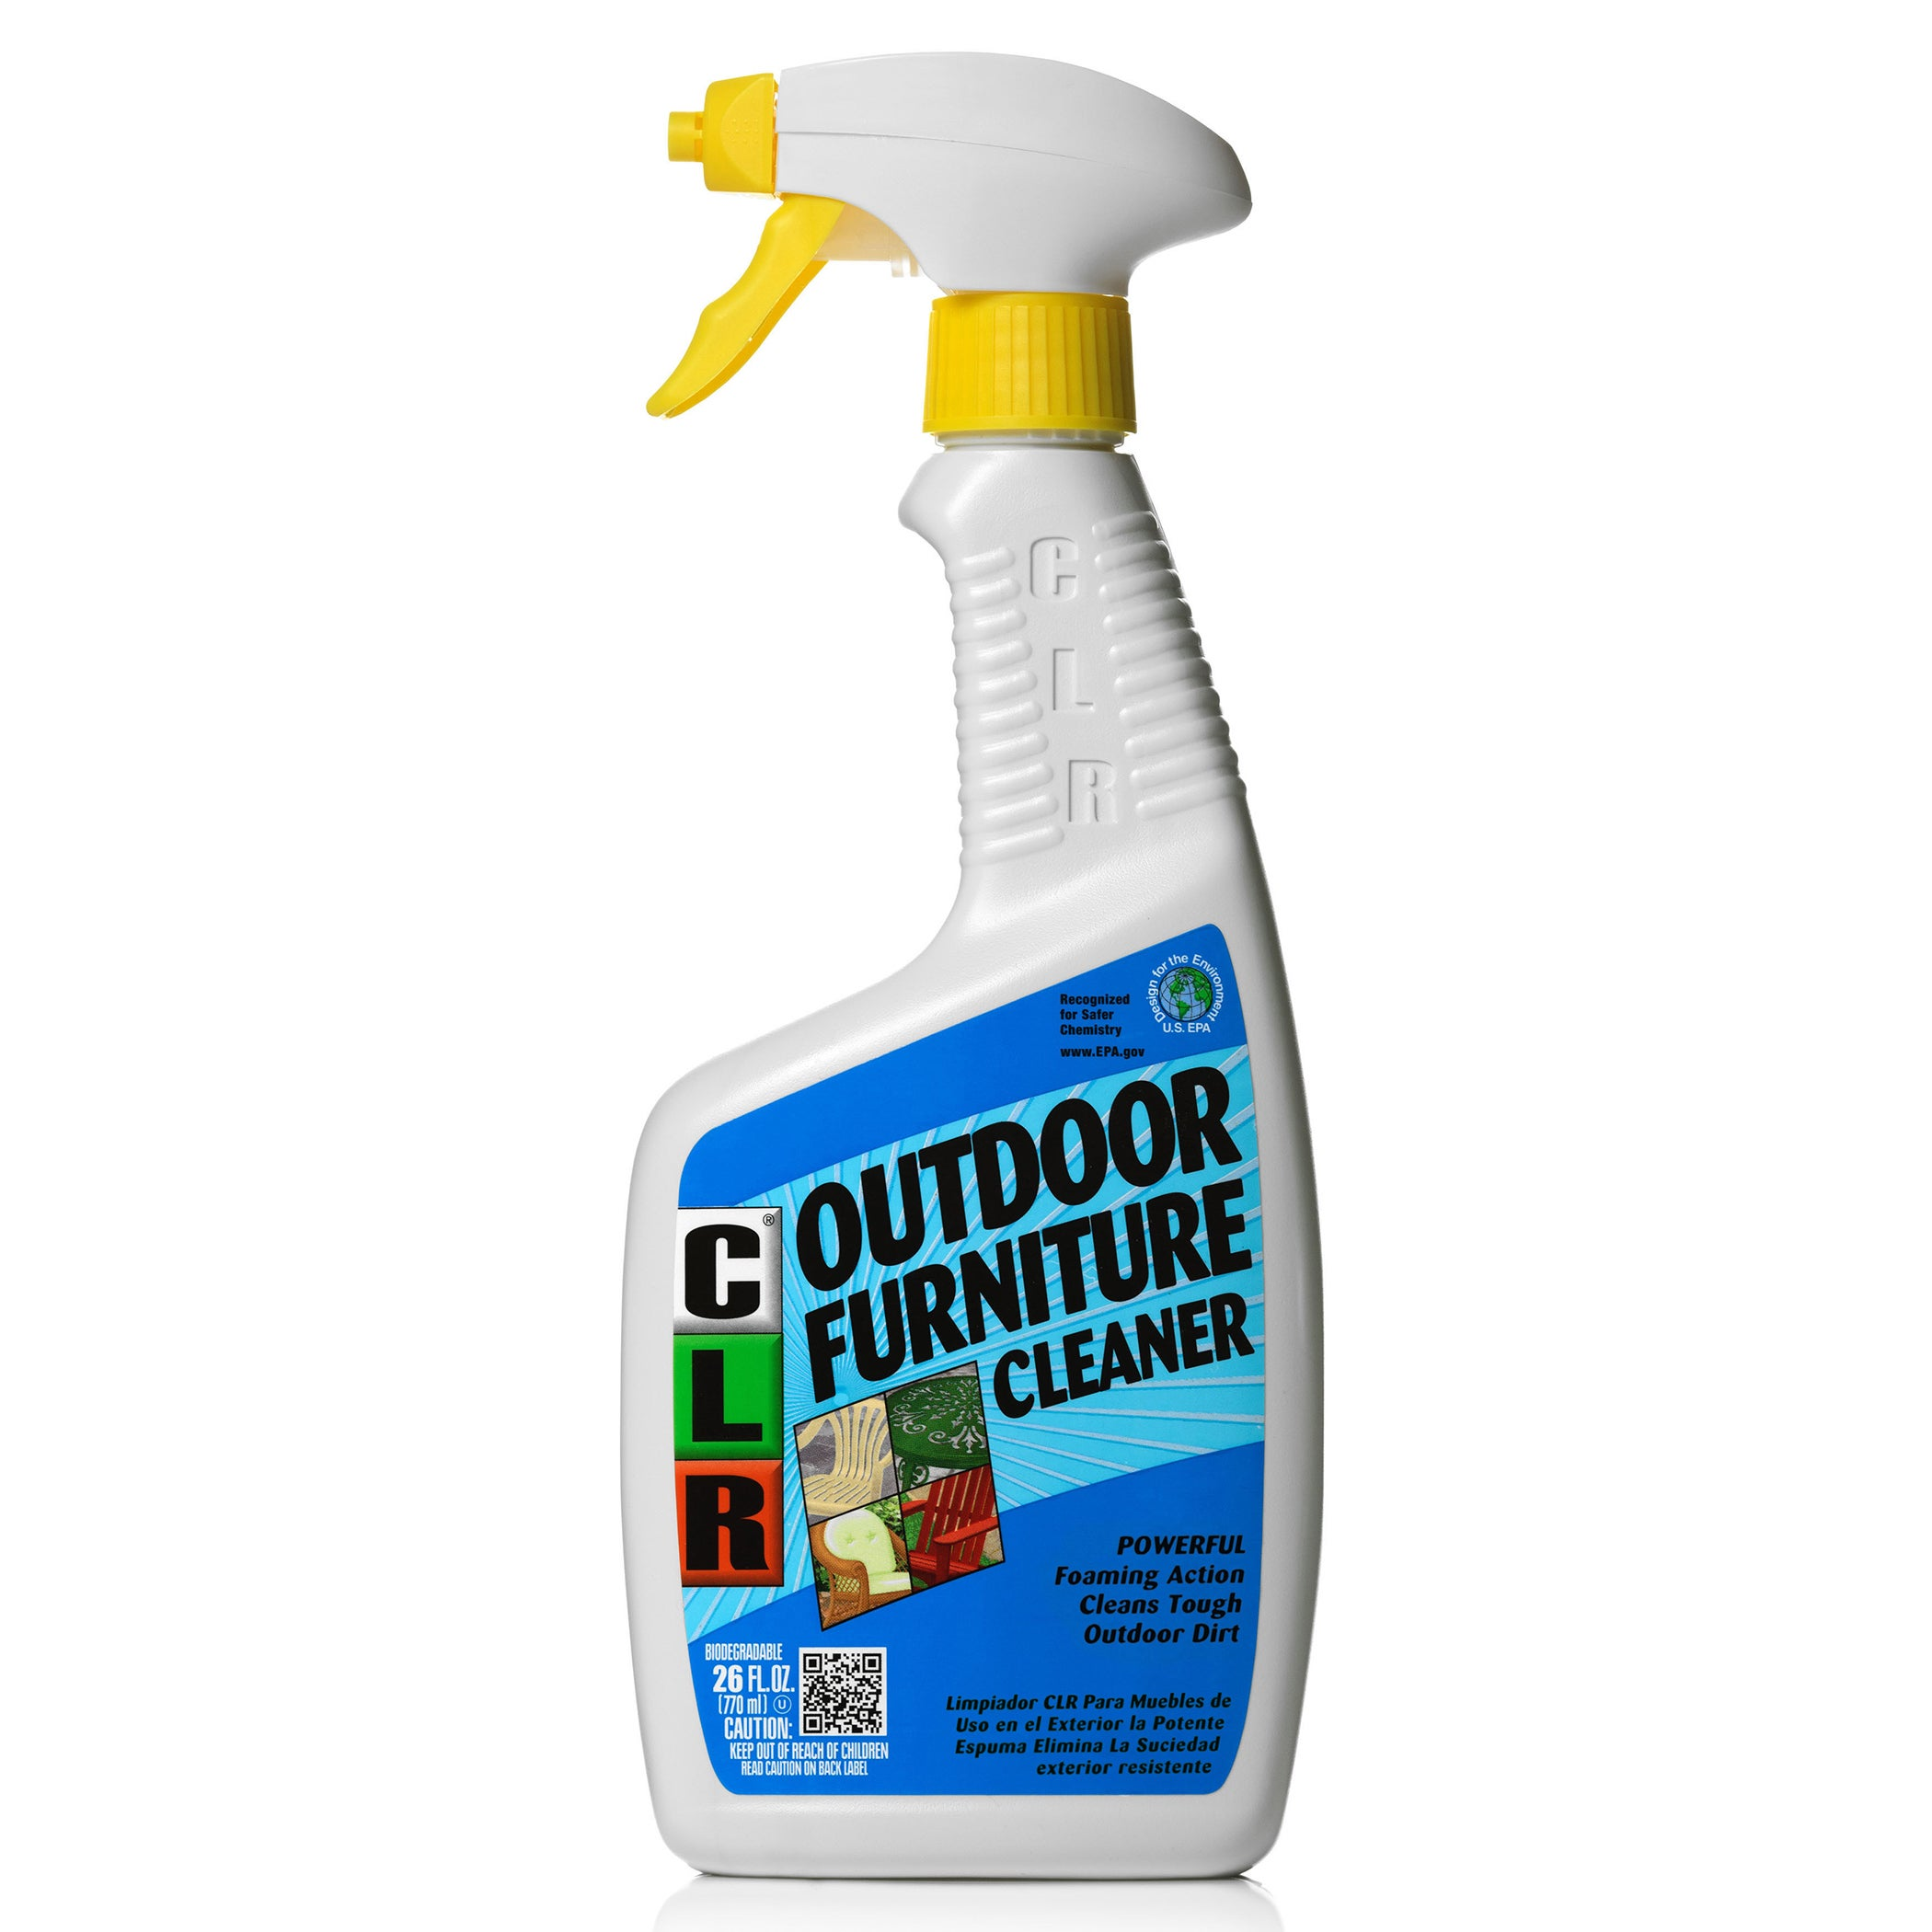 Details about jelmar of 26 26 oz c l r outdoor furniture cleaner white